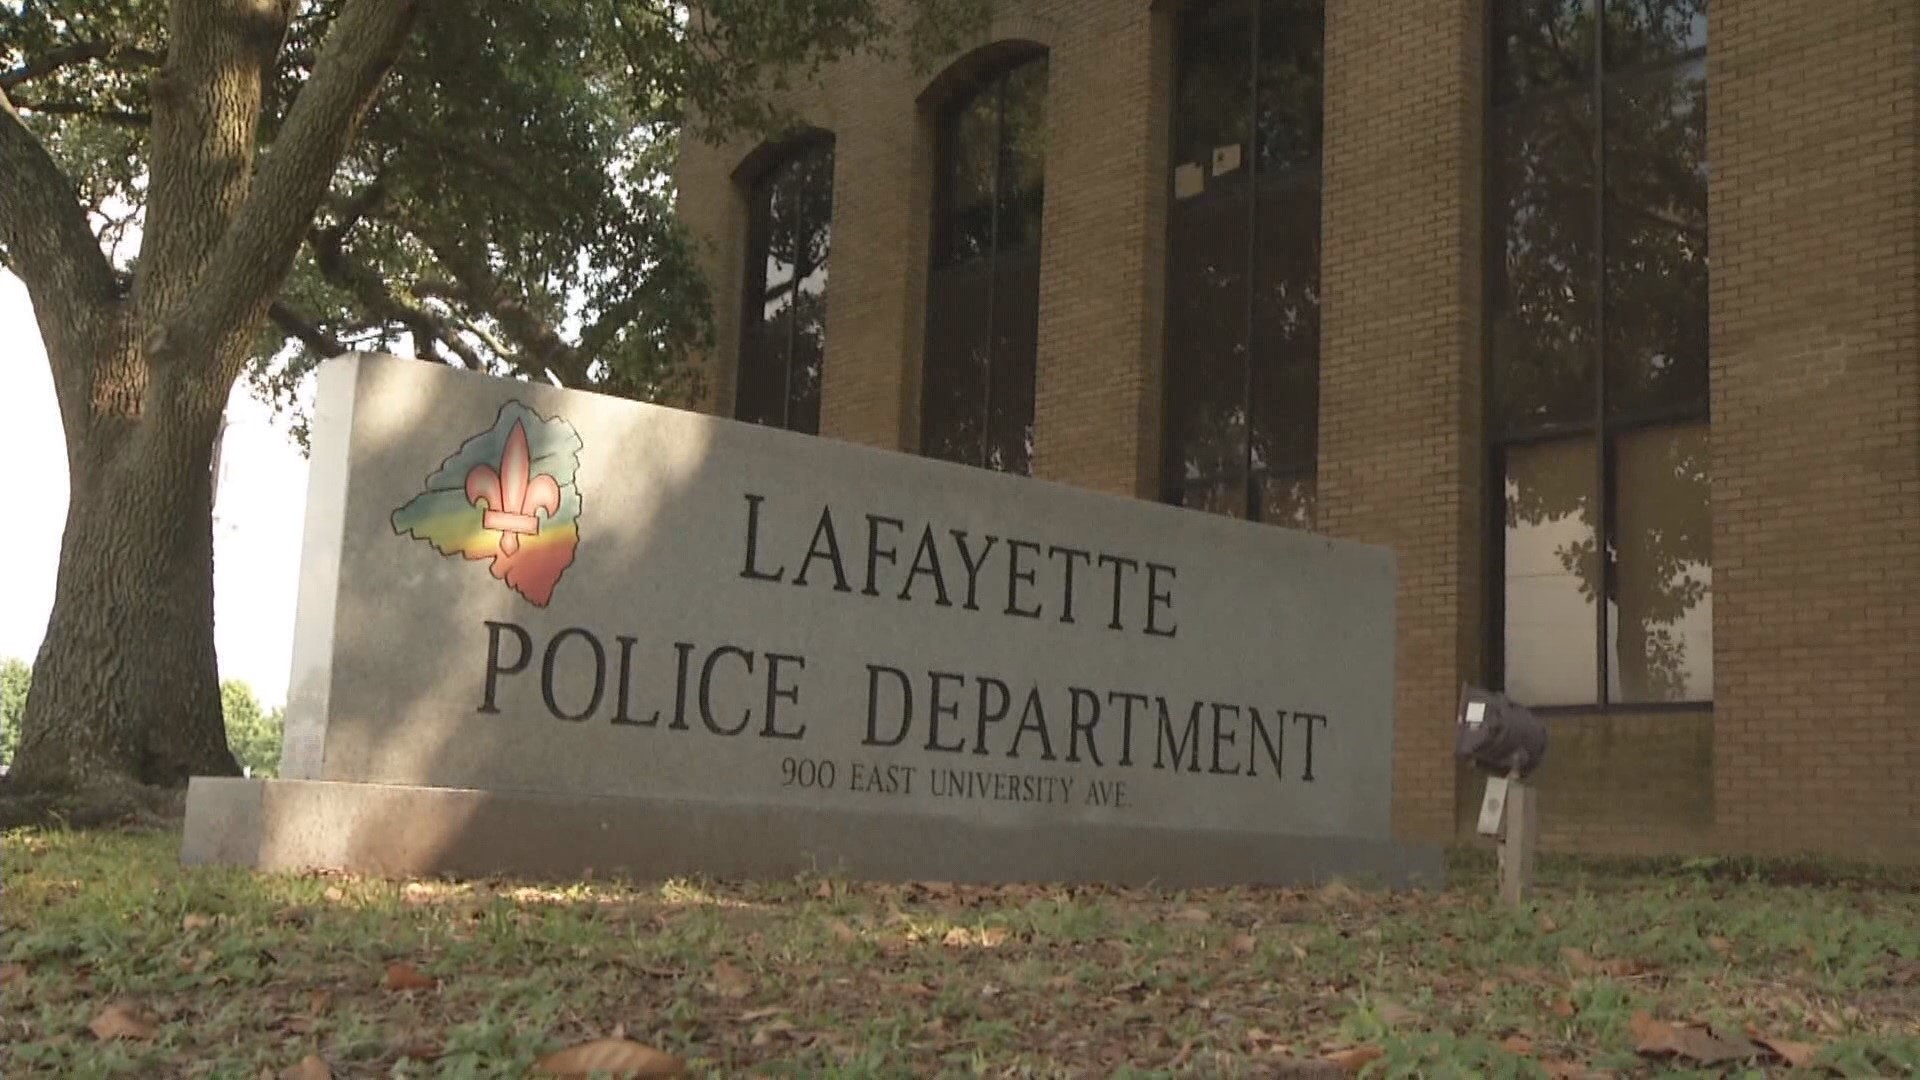 Lafayette Police Department_403147